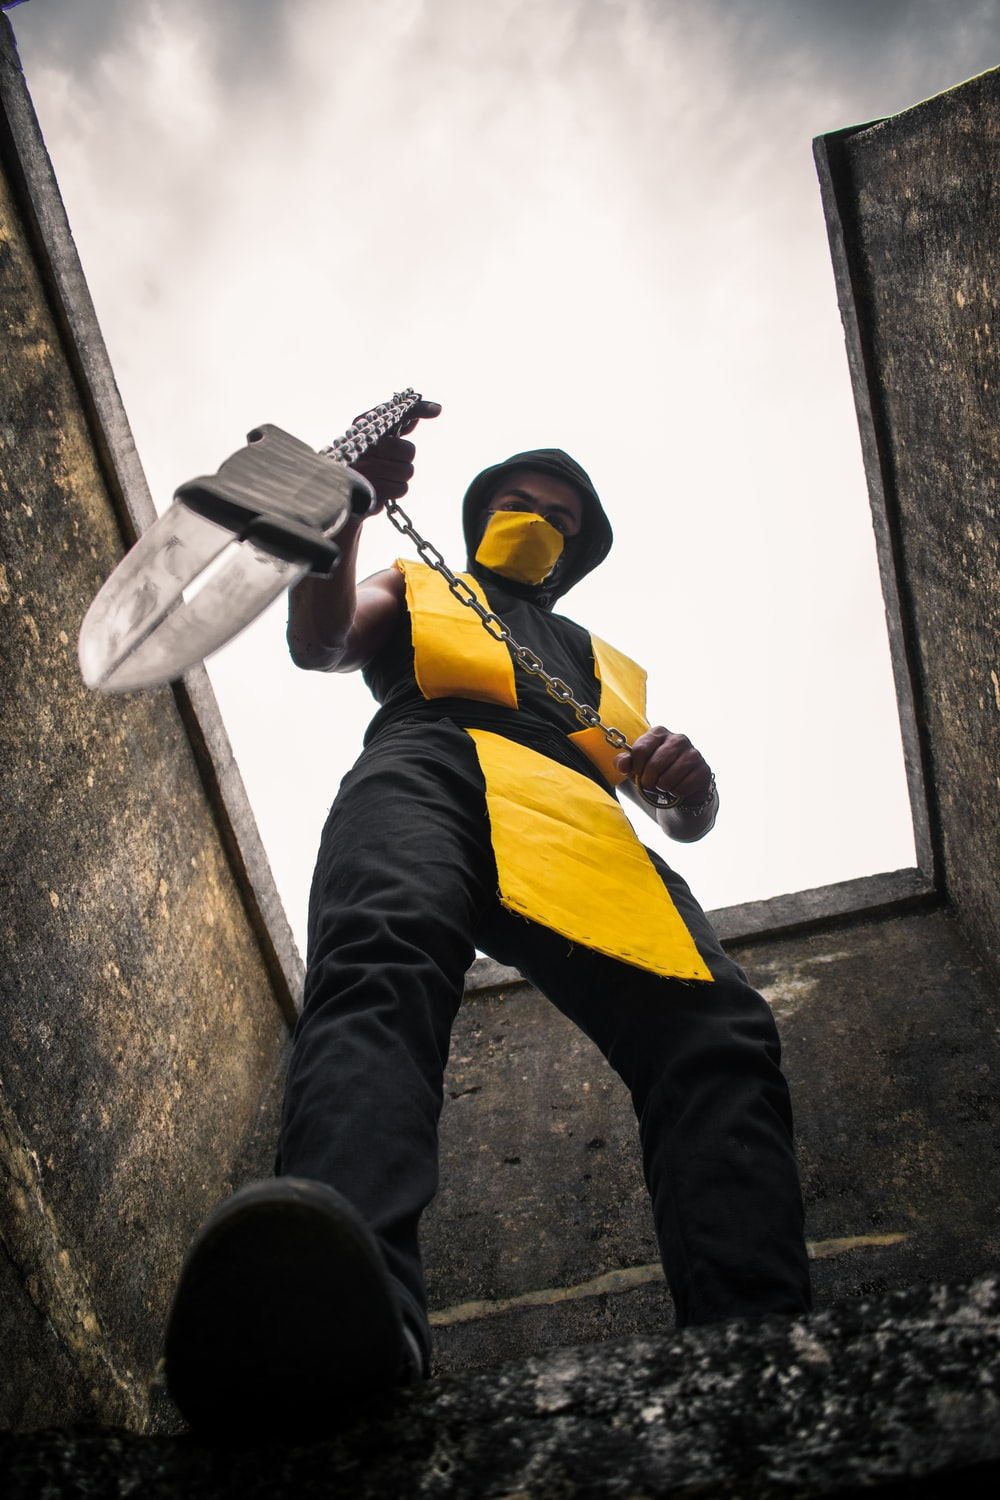 high-angle photography of Scorpion suited cosplayer